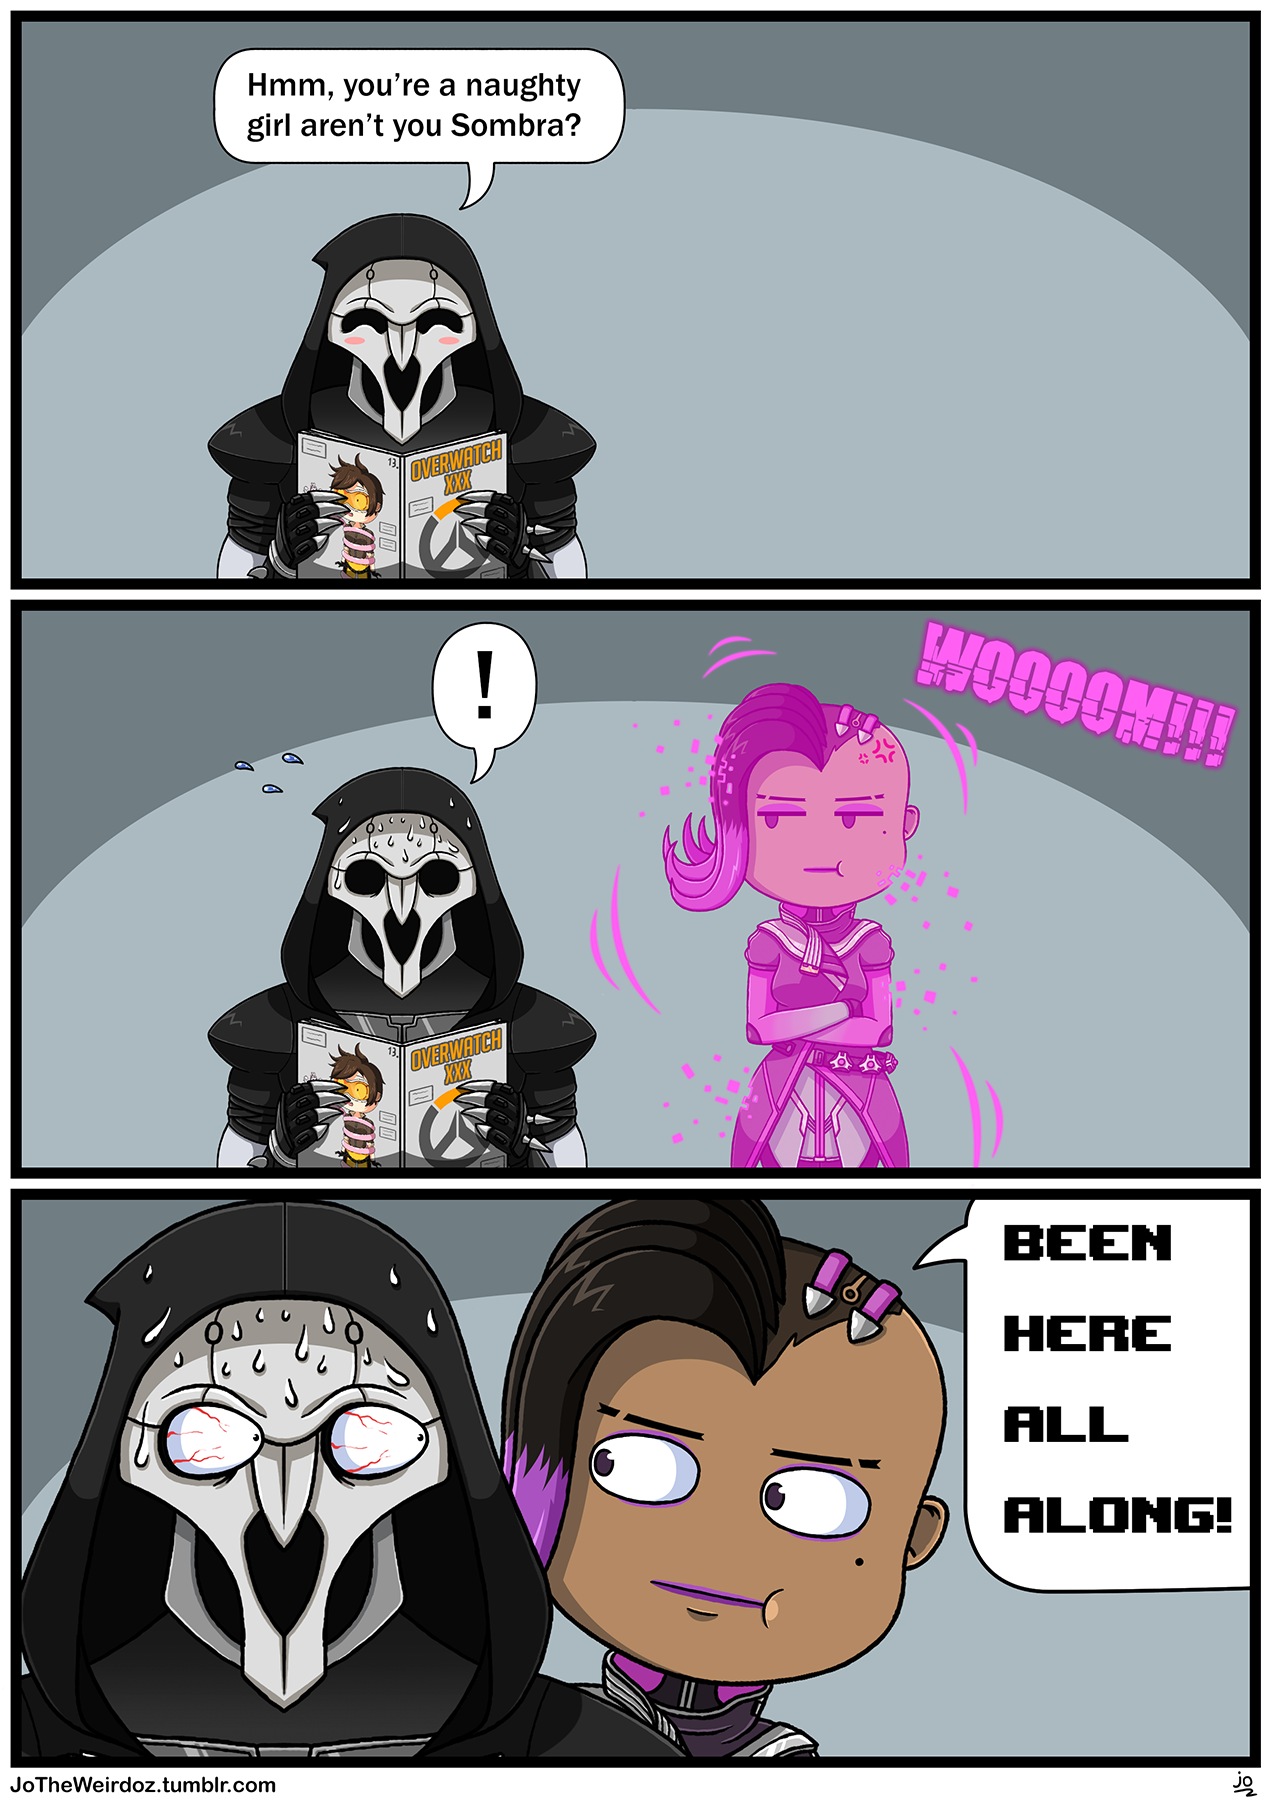 6ca172951956b25fda70725d5d5e8f08 overwatch comic based on an inside joke about sombra me and my